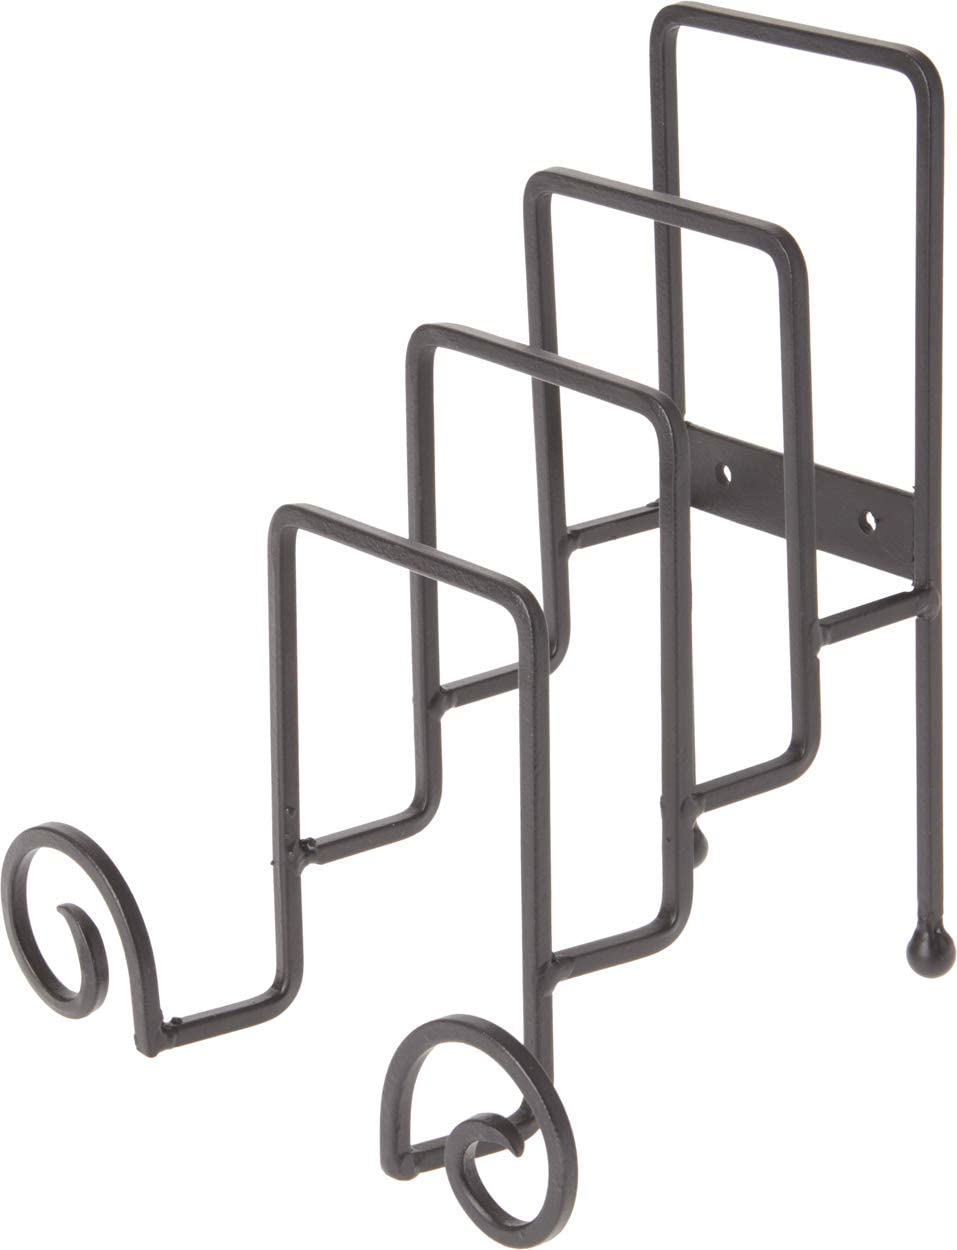 Bard's Wrought Iron 4 Plate Table Stand Max 59% OFF D Omaha Mall W H 7.25